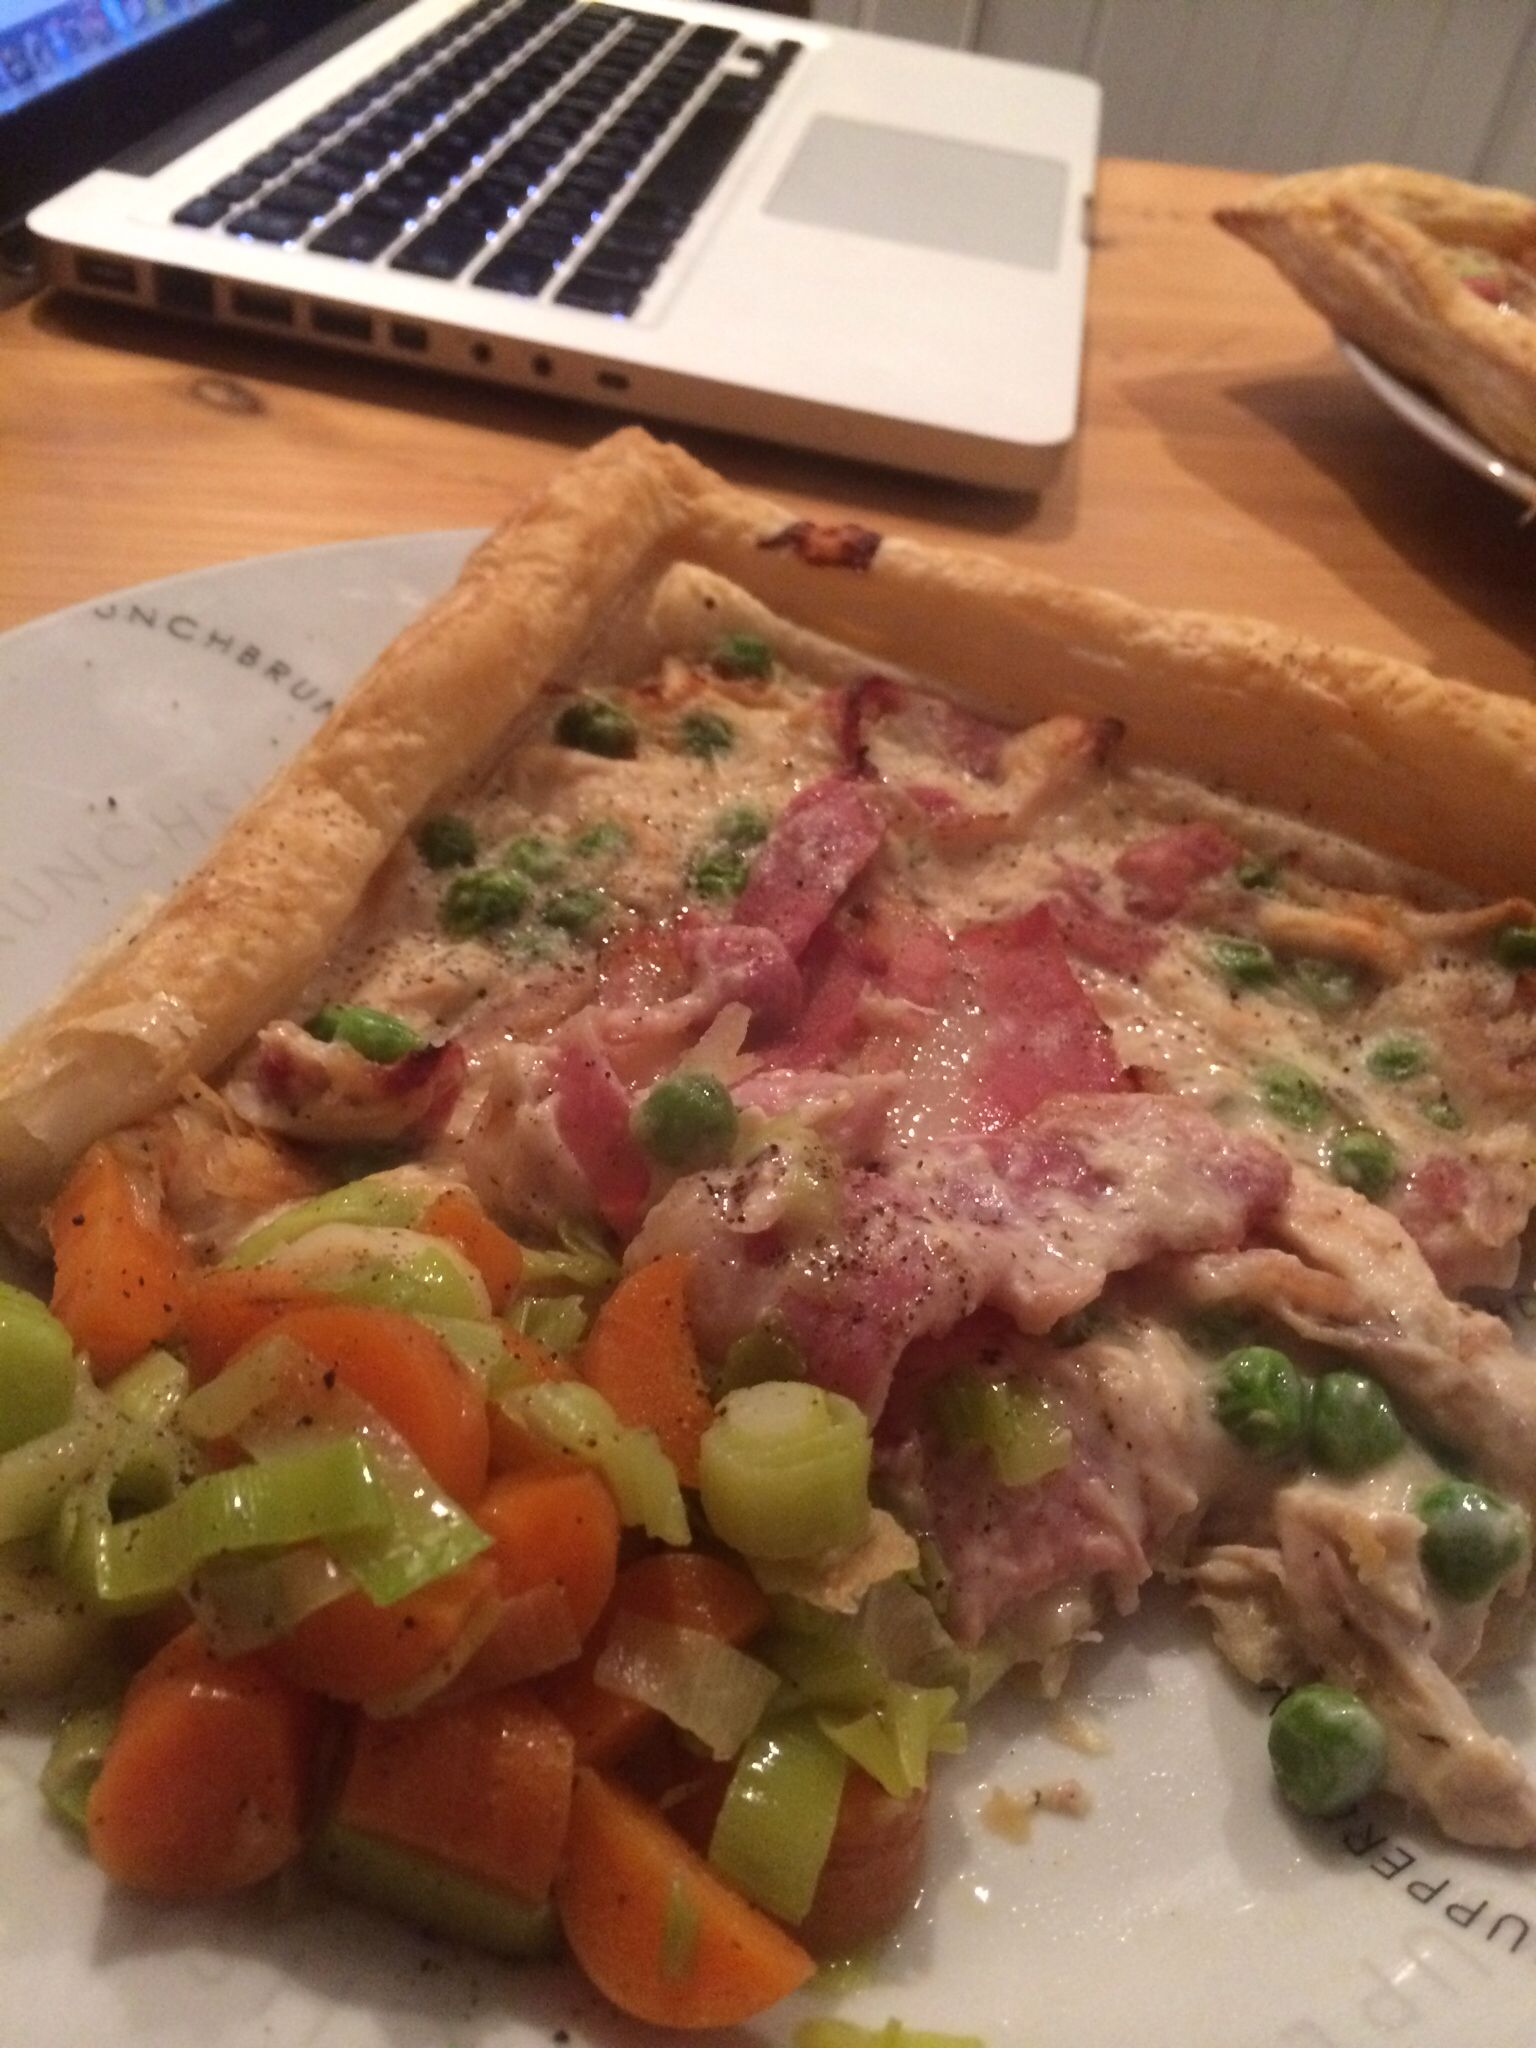 Chicken and gammon slice with buttery leaks and carrots